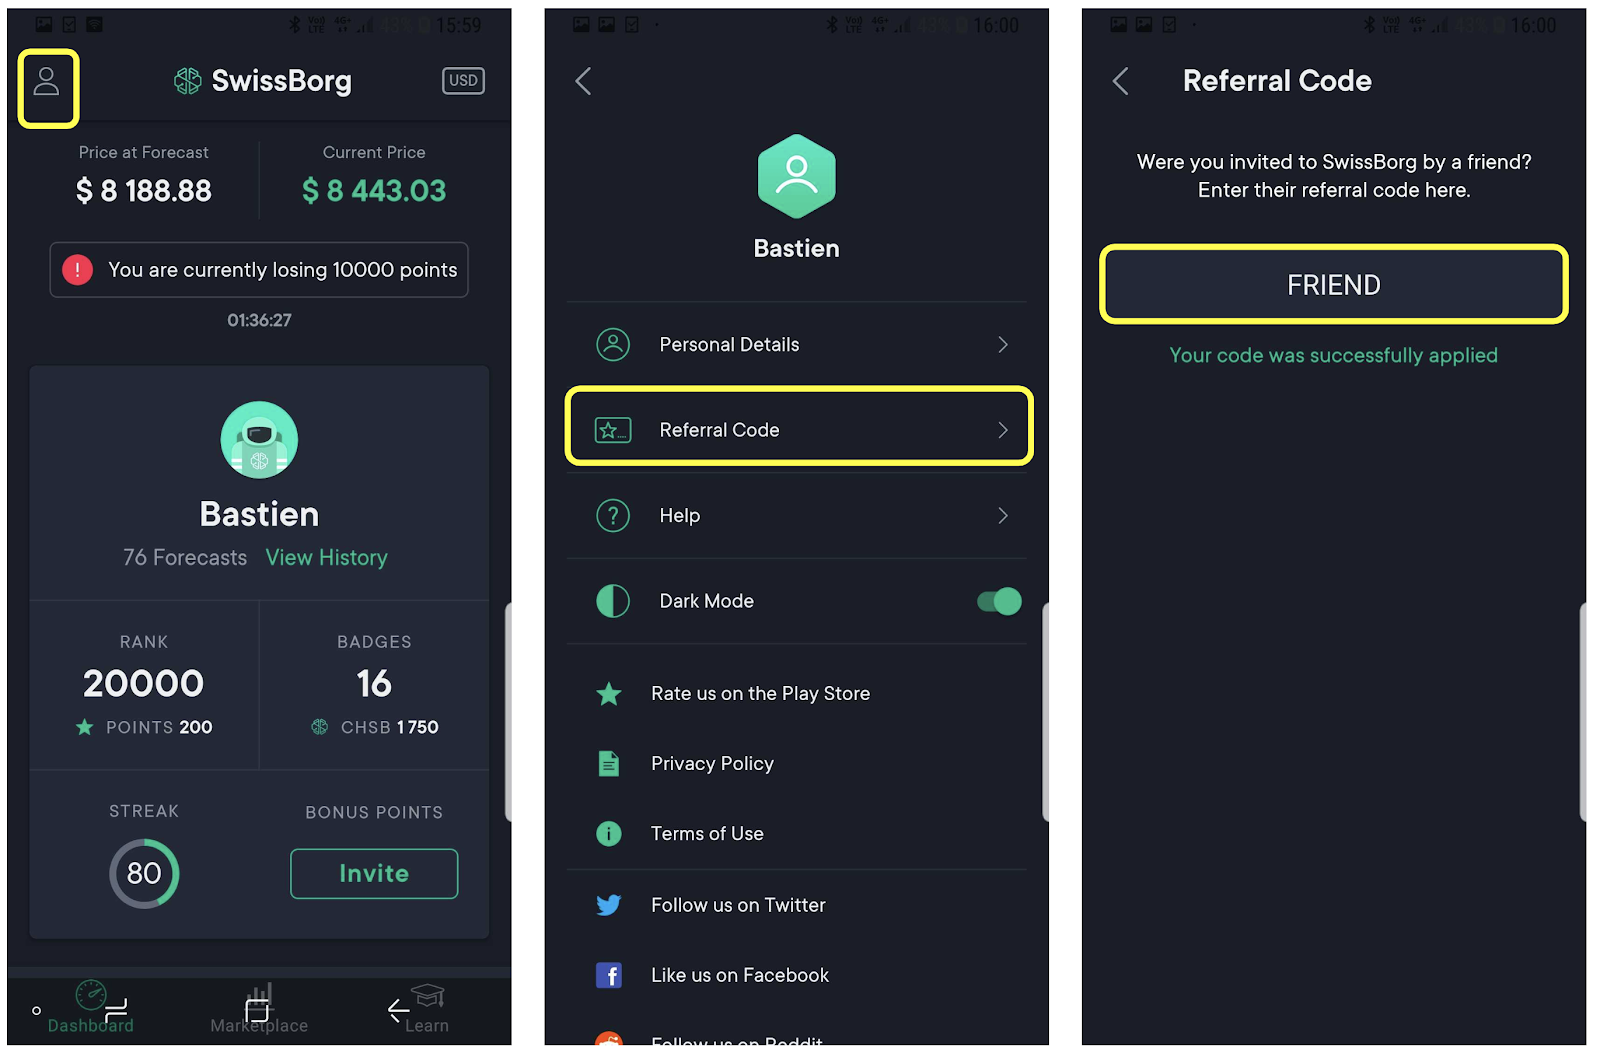 SwissBorg community app referral